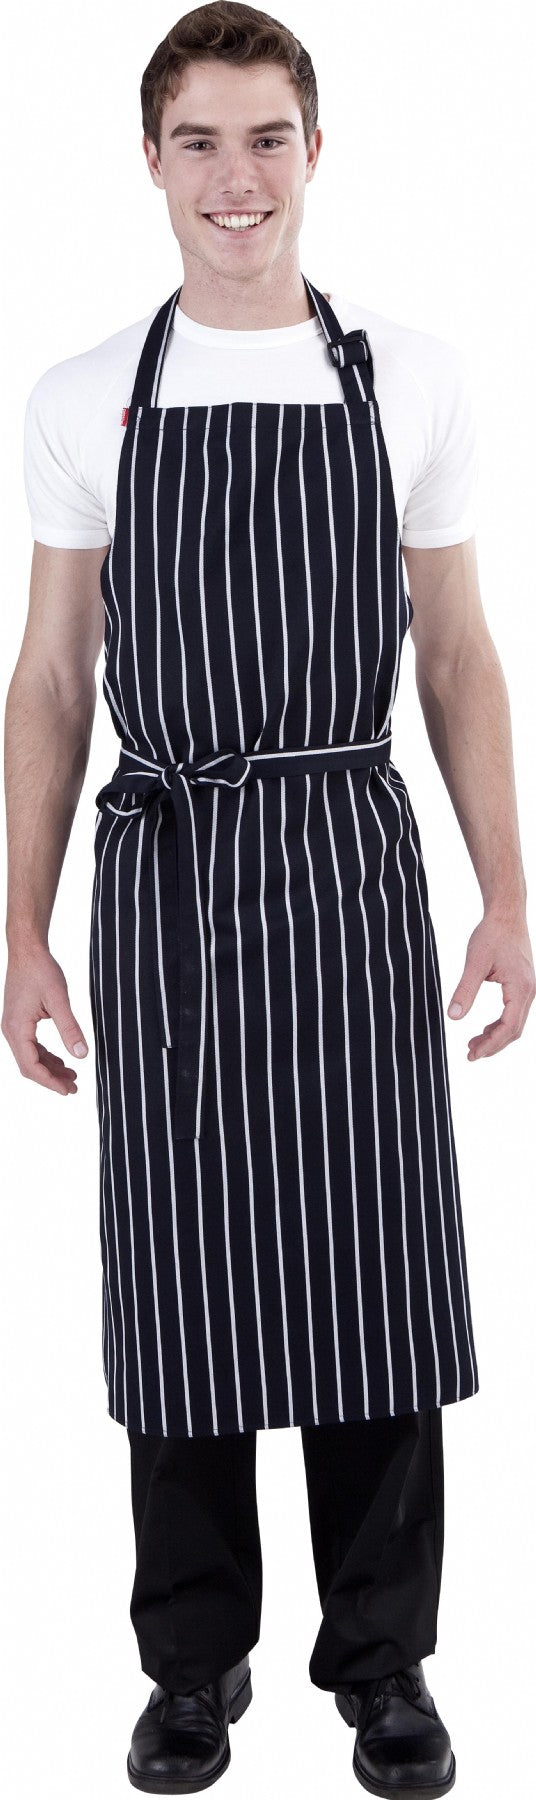 UK Bib FULL Length Chefs Bib Apron (Adjustable Neck) - Global Chef